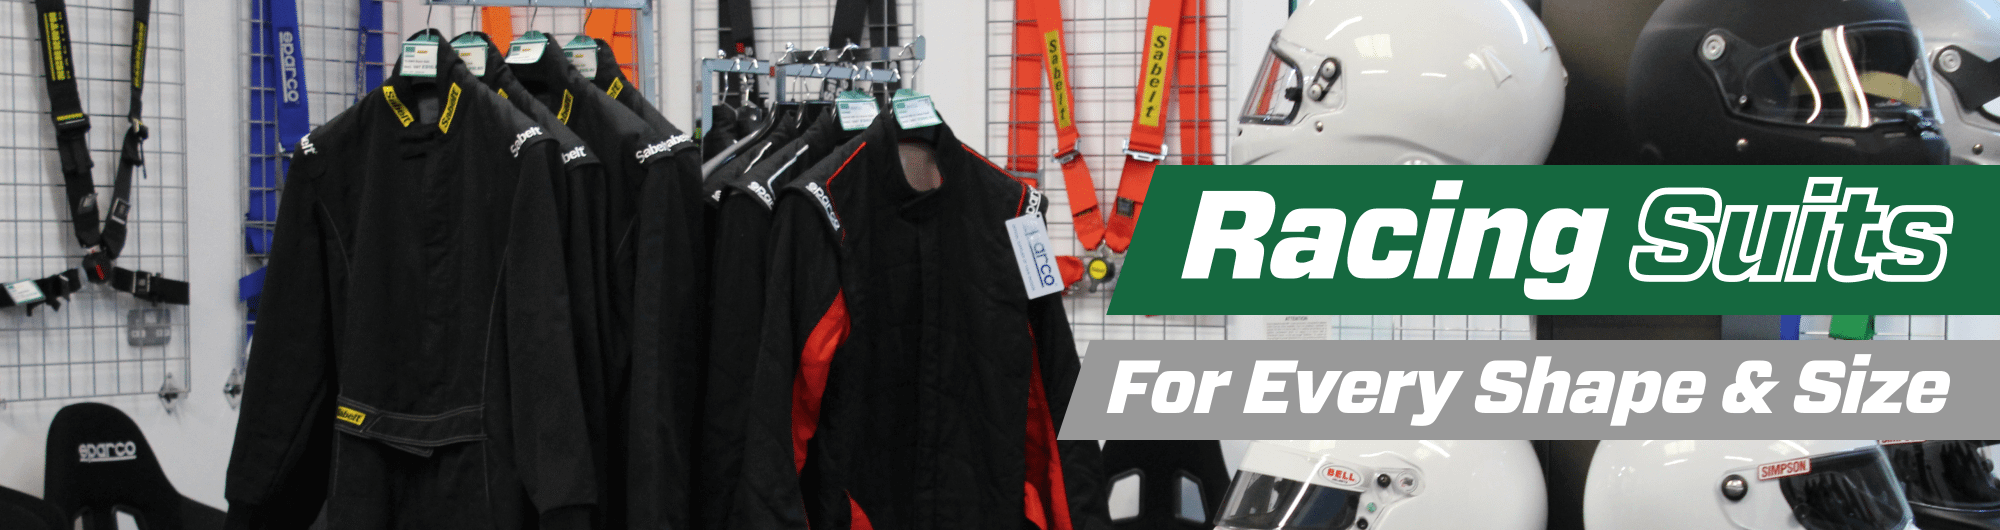 Racing Suits -For Every Shape & Size – www.gsmotorsport.co.uk Hero Image – October 2017